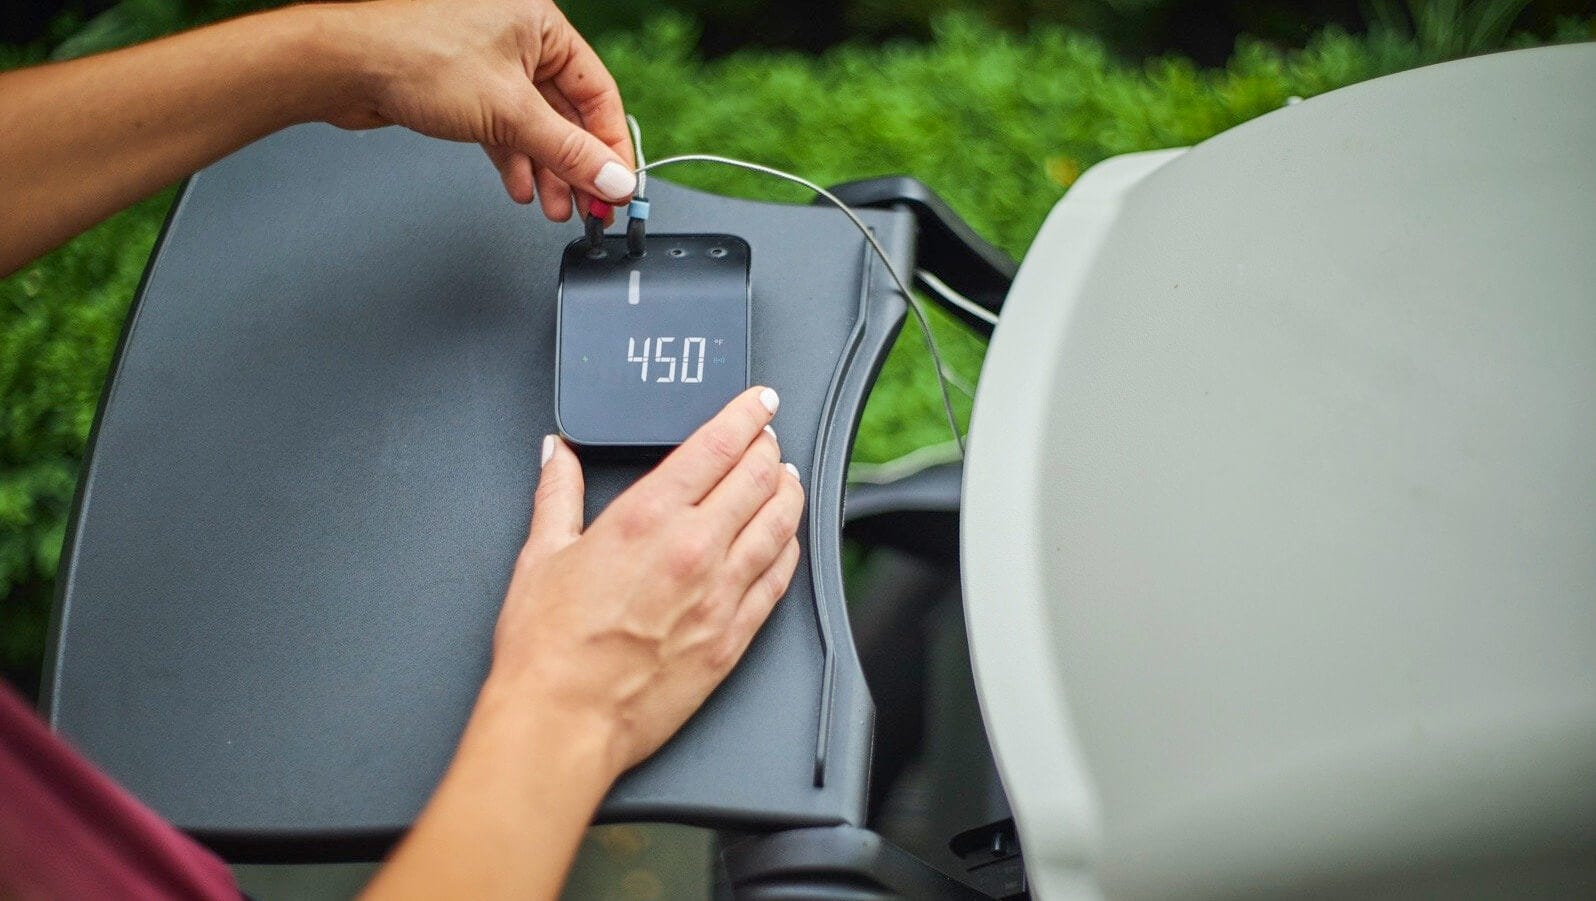 The grilling hub display showing a temperature of 450 degrees.